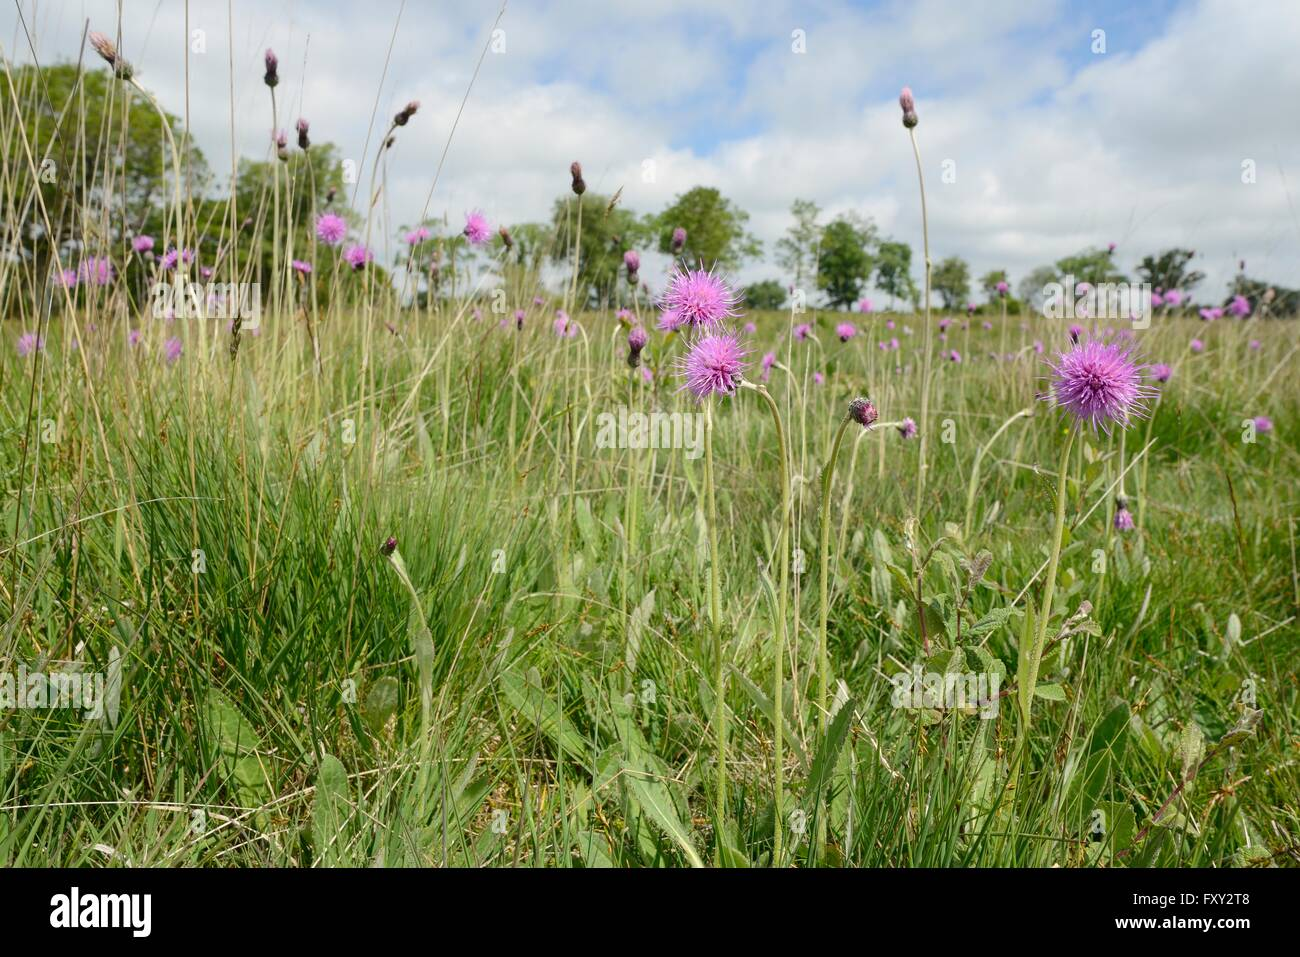 Meadow thistles (Cirsium dissectum) flowering in a damp culm grassland meadow, Devon, UK, June. - Stock Image